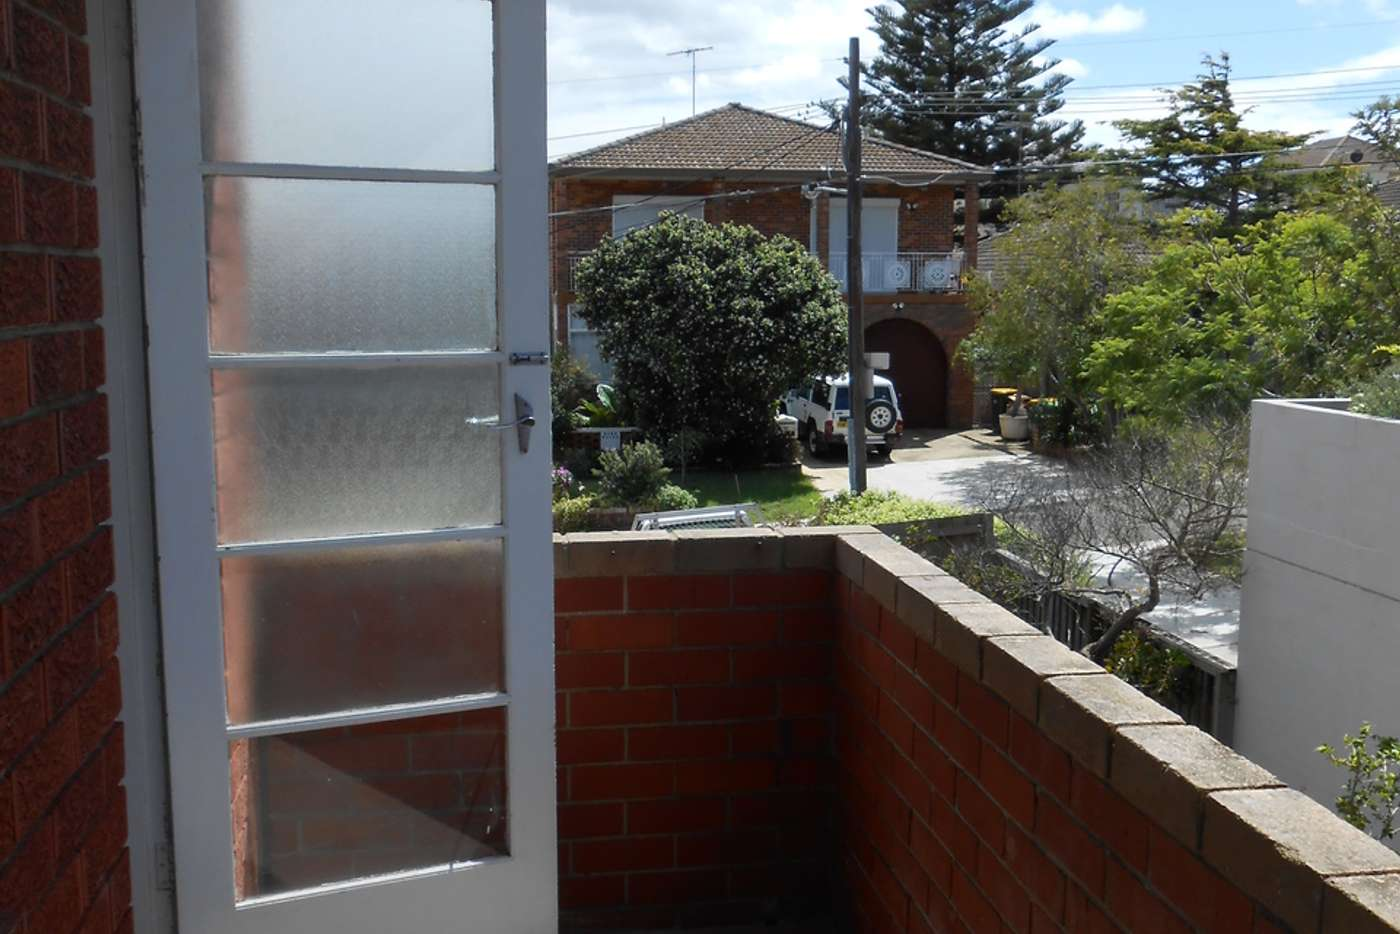 Main view of Homely apartment listing, 10/78 Maroubra Road, Maroubra NSW 2035